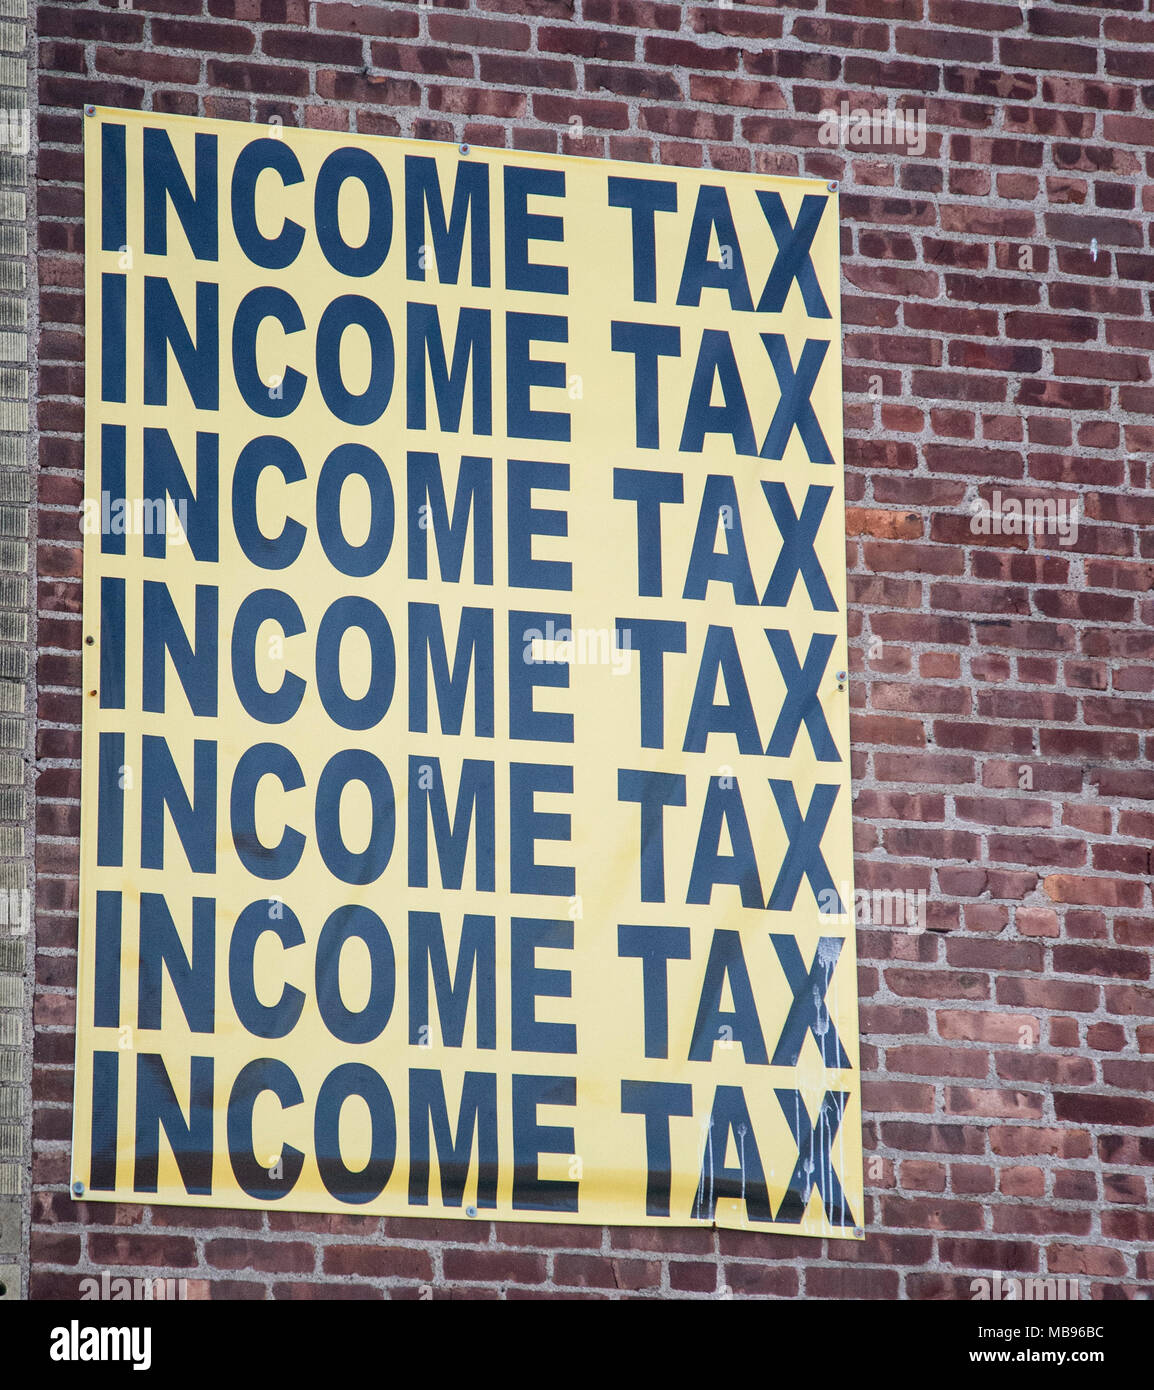 Income tax sign on the side of a building in Paterson, NJ - Stock Image